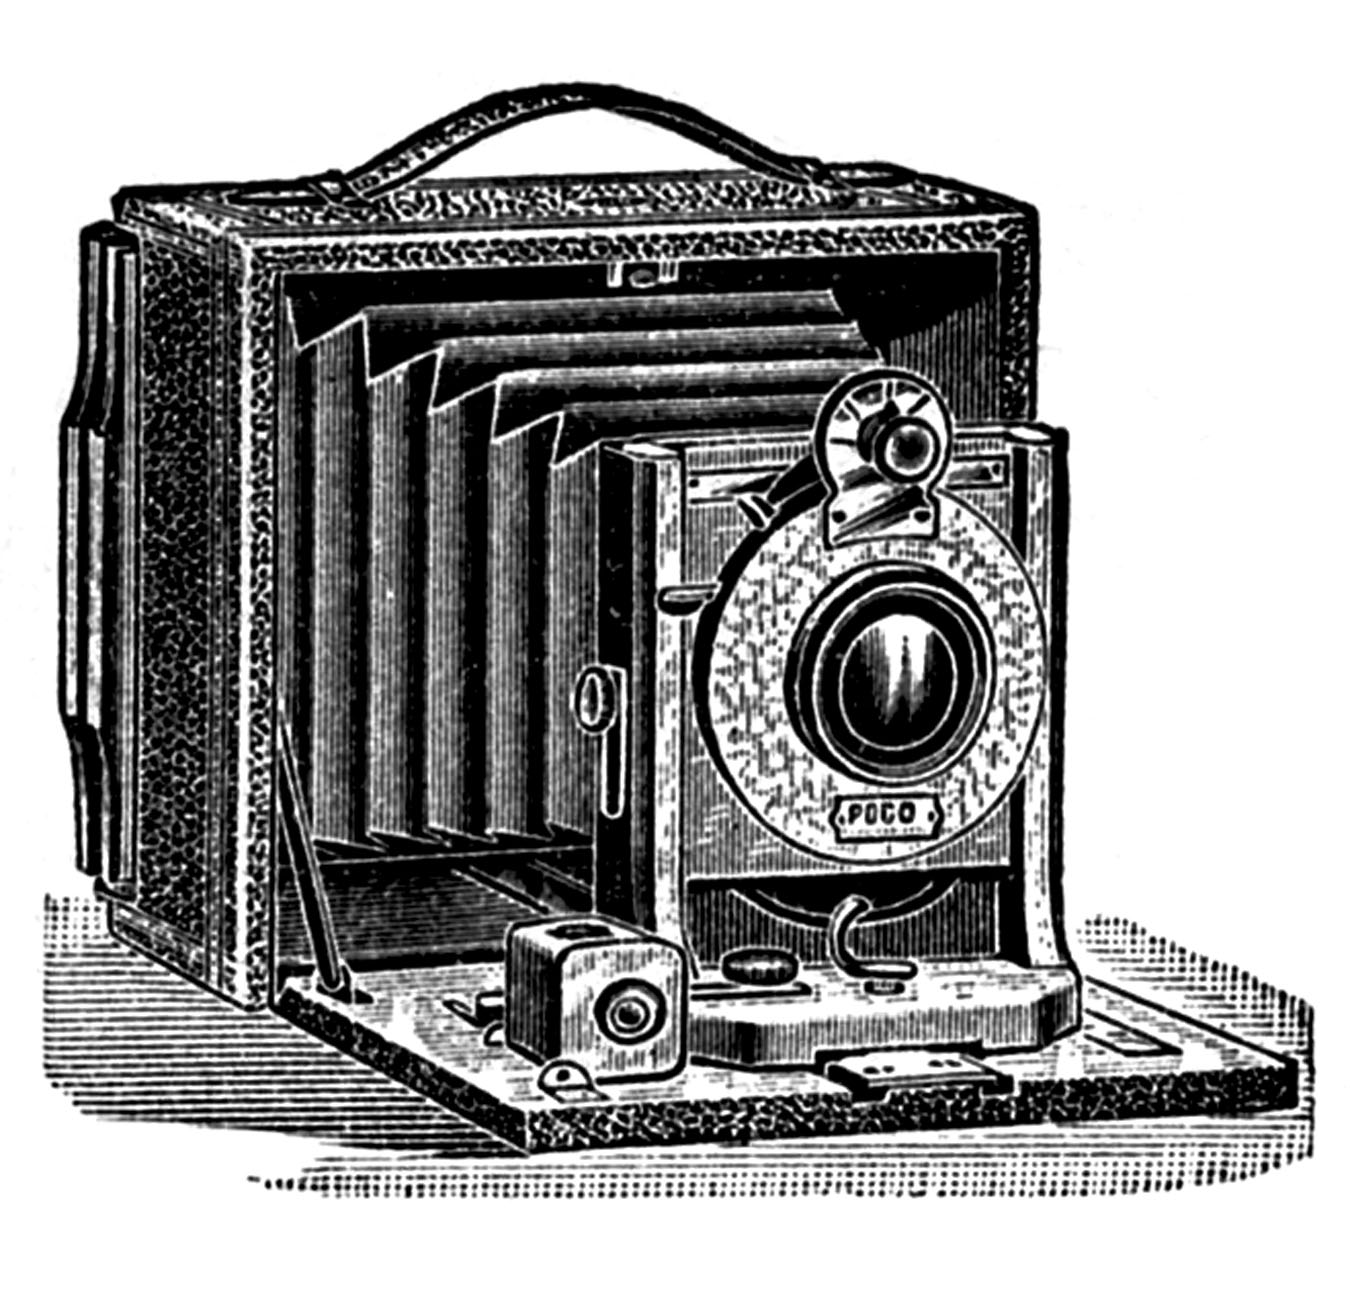 Old time camera clipart image royalty free download Antique Pictures - Camera, Stereoscope, Ear Trumpet - The ... image royalty free download